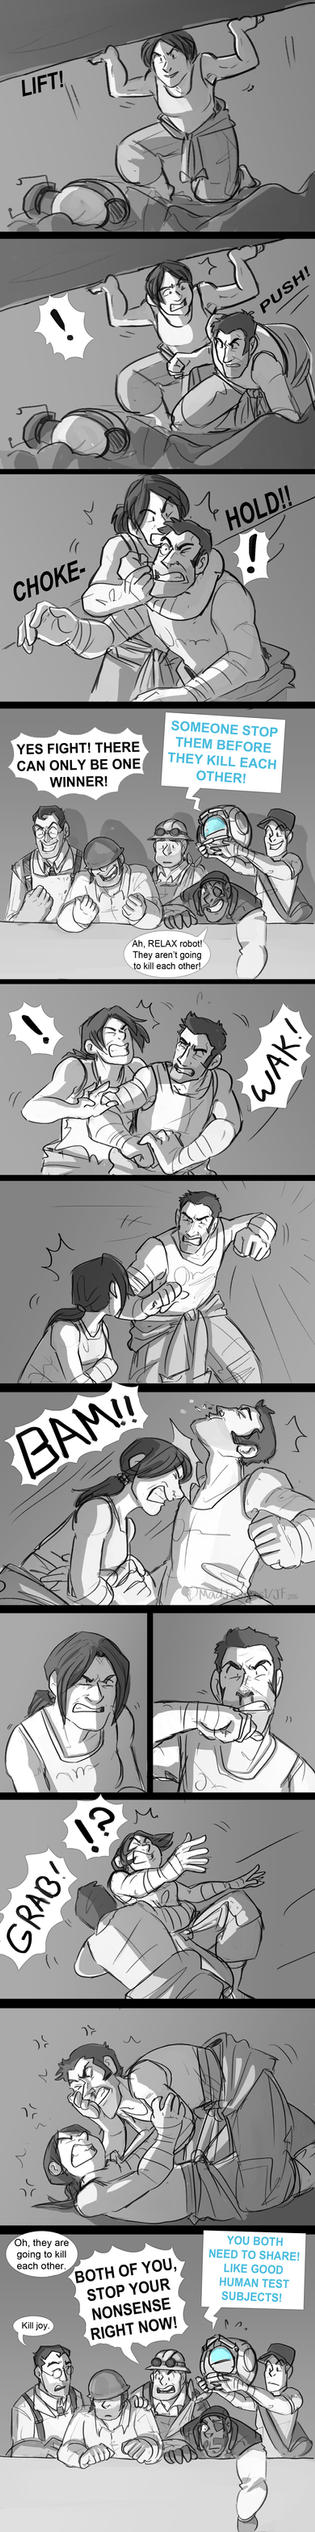 TF2-Long Lost Pg. 76 by MadJesters1